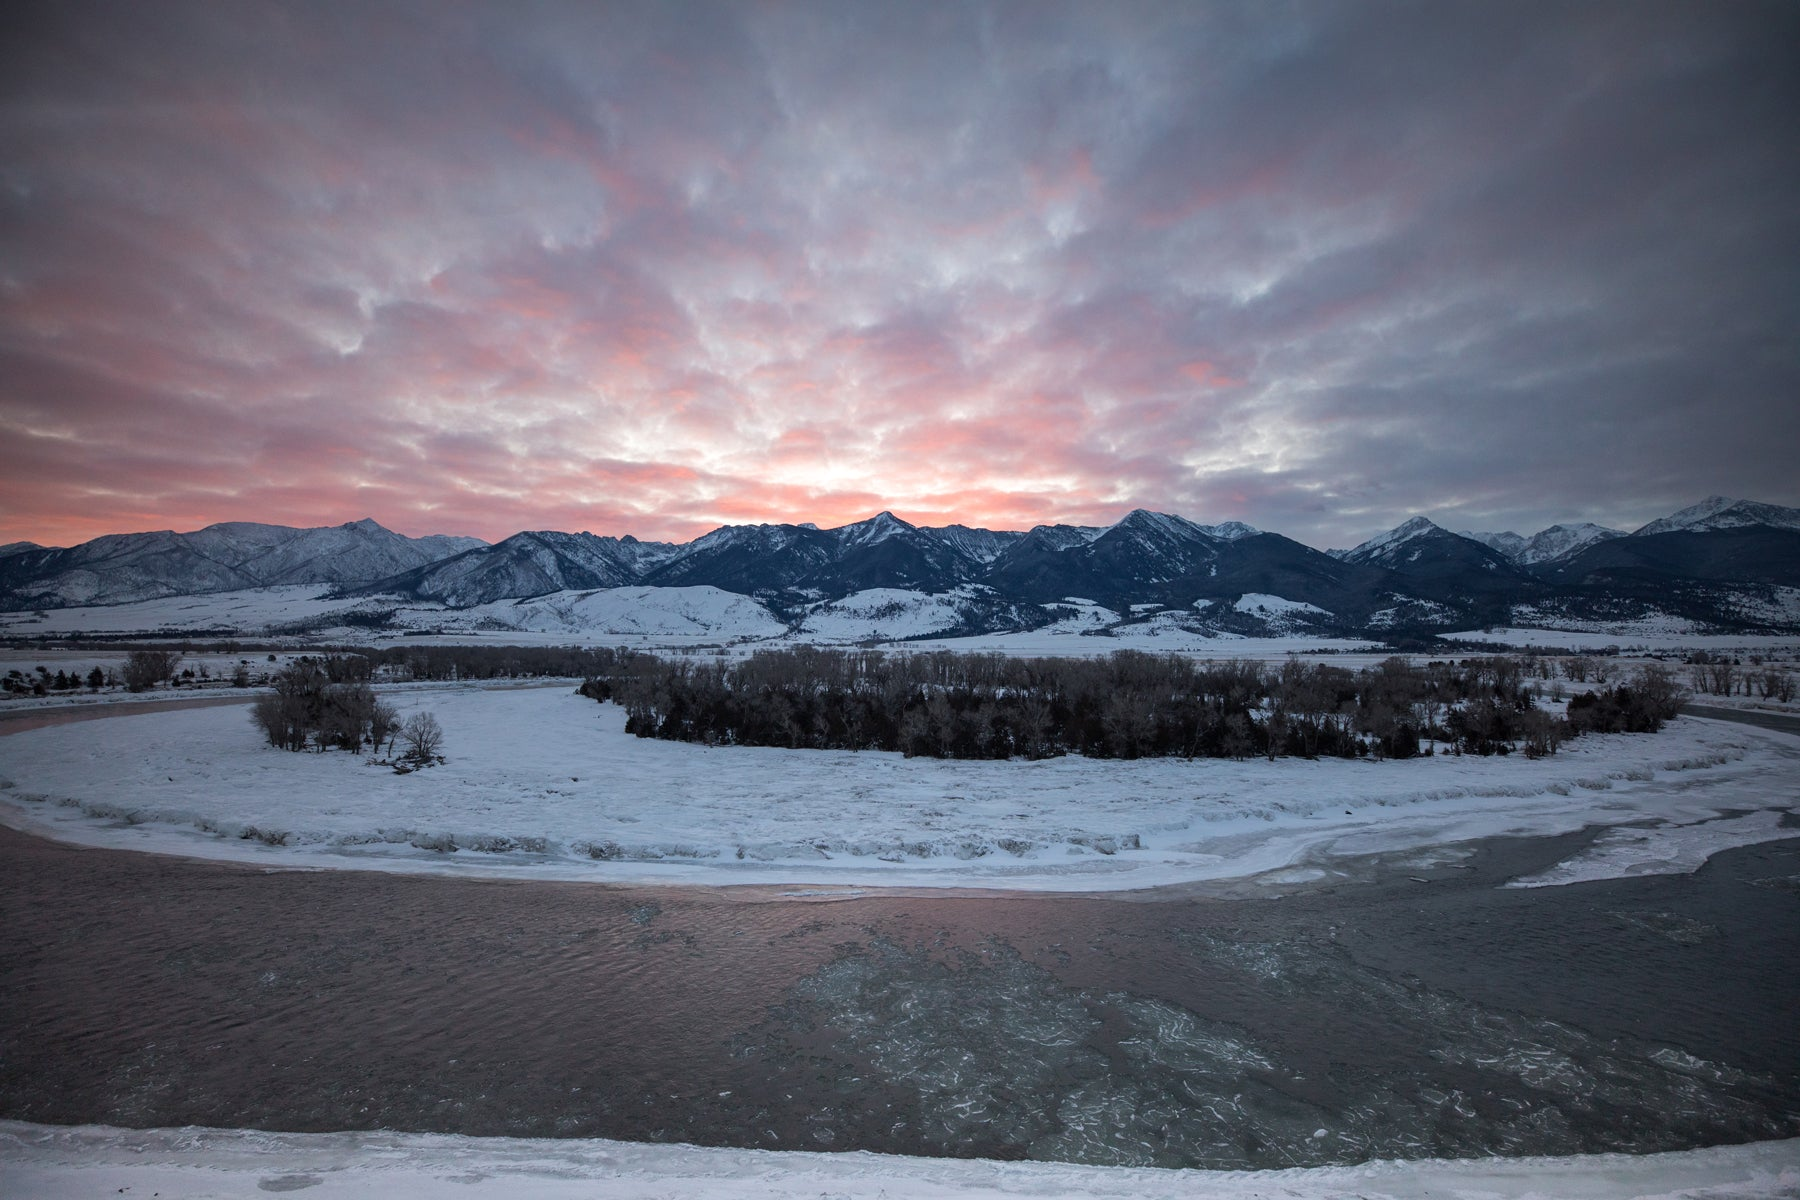 Sunset over snowy mountains in Paradise Valley in Montana.